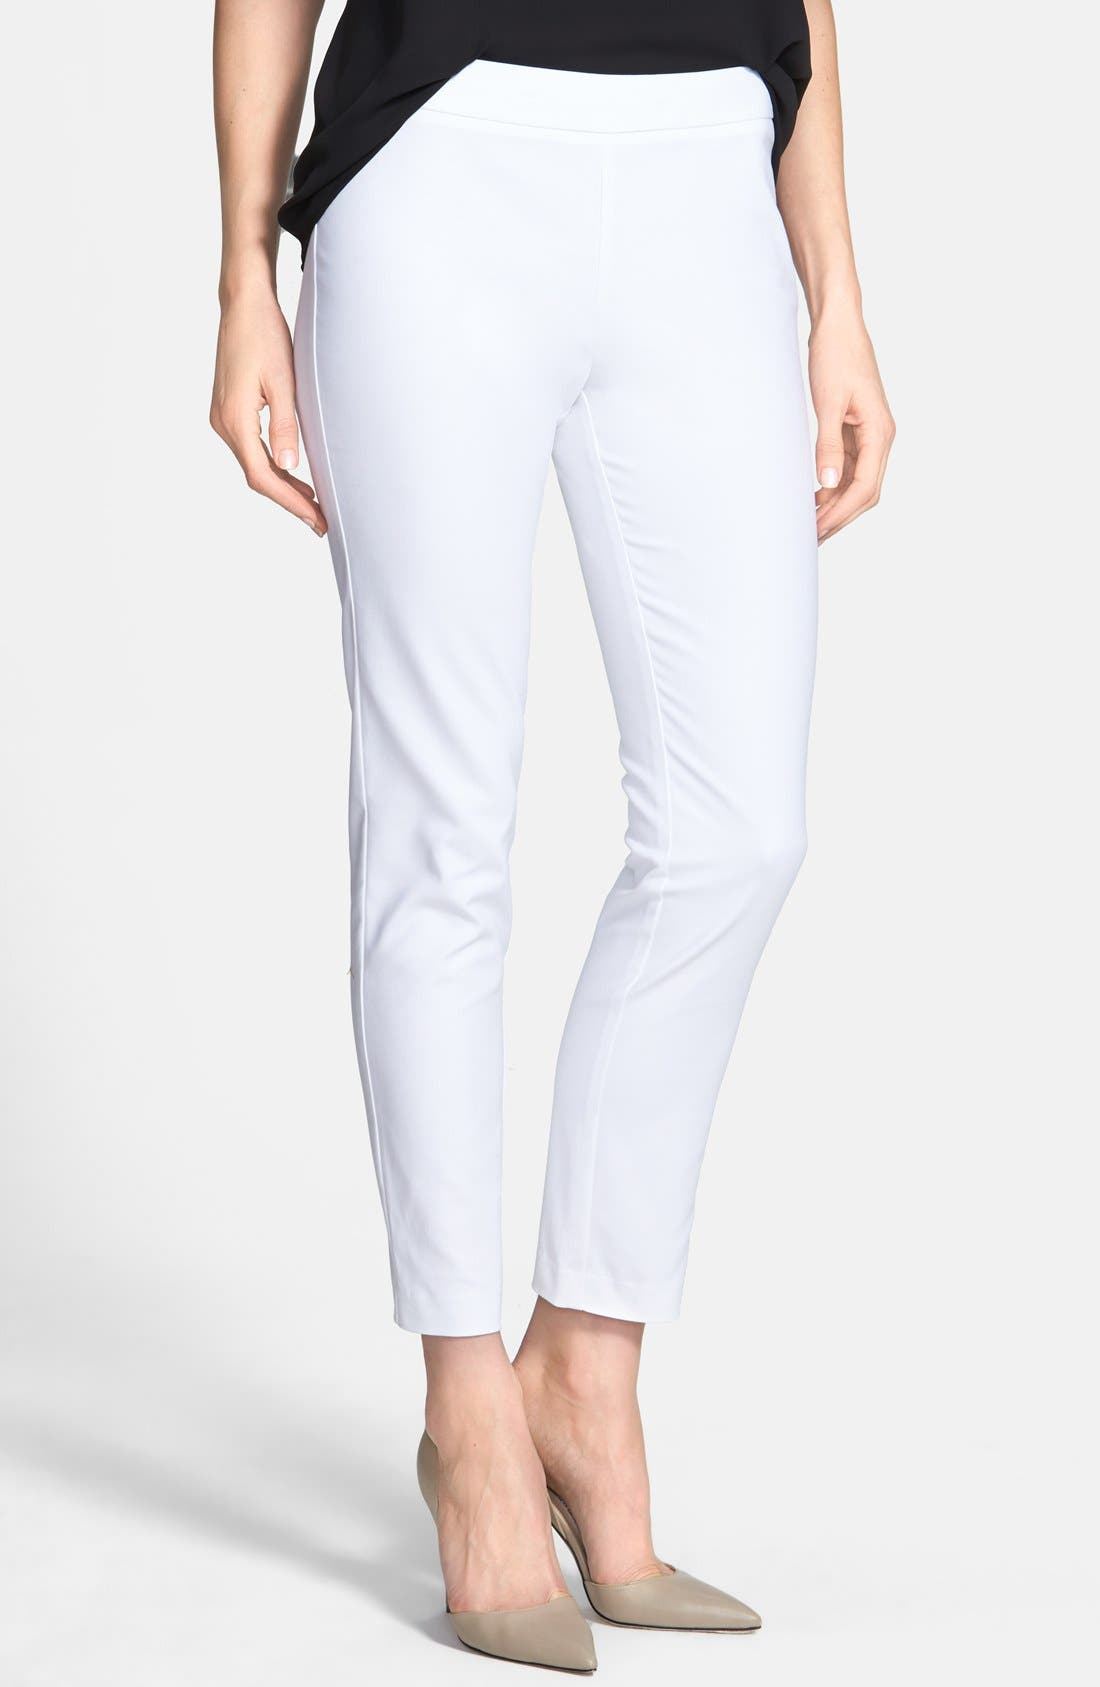 Alternate Image 1 Selected - Kenneth Cole New York 'Khloee' Slim Ankle Pants